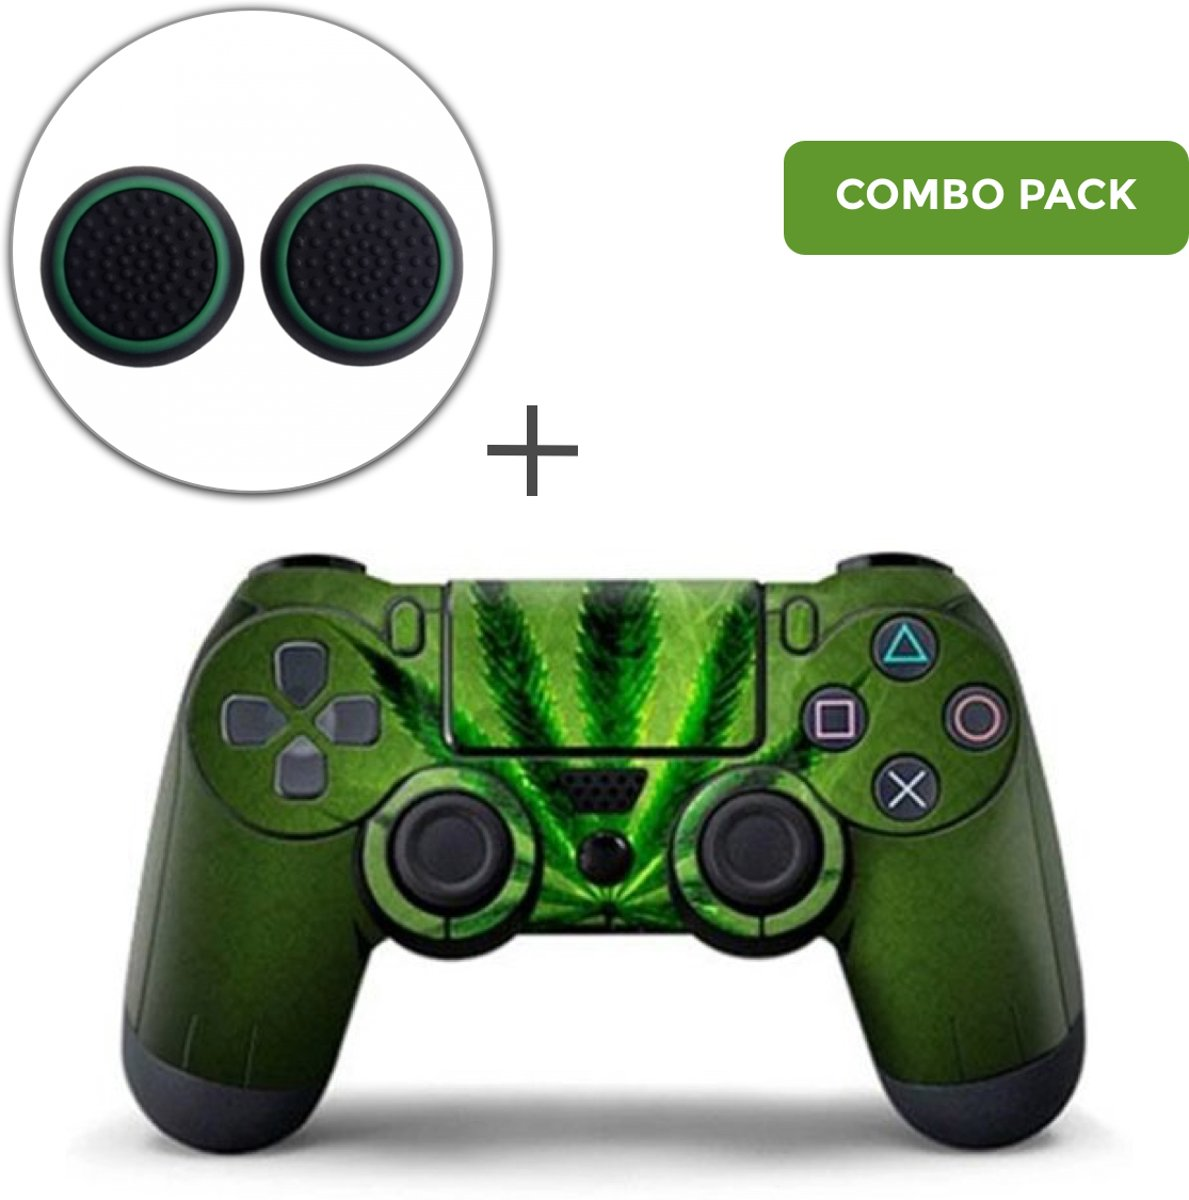 Weed 420 Combo Pack - PS4 Controller Skins PlayStation Stickers + Thumb Grips